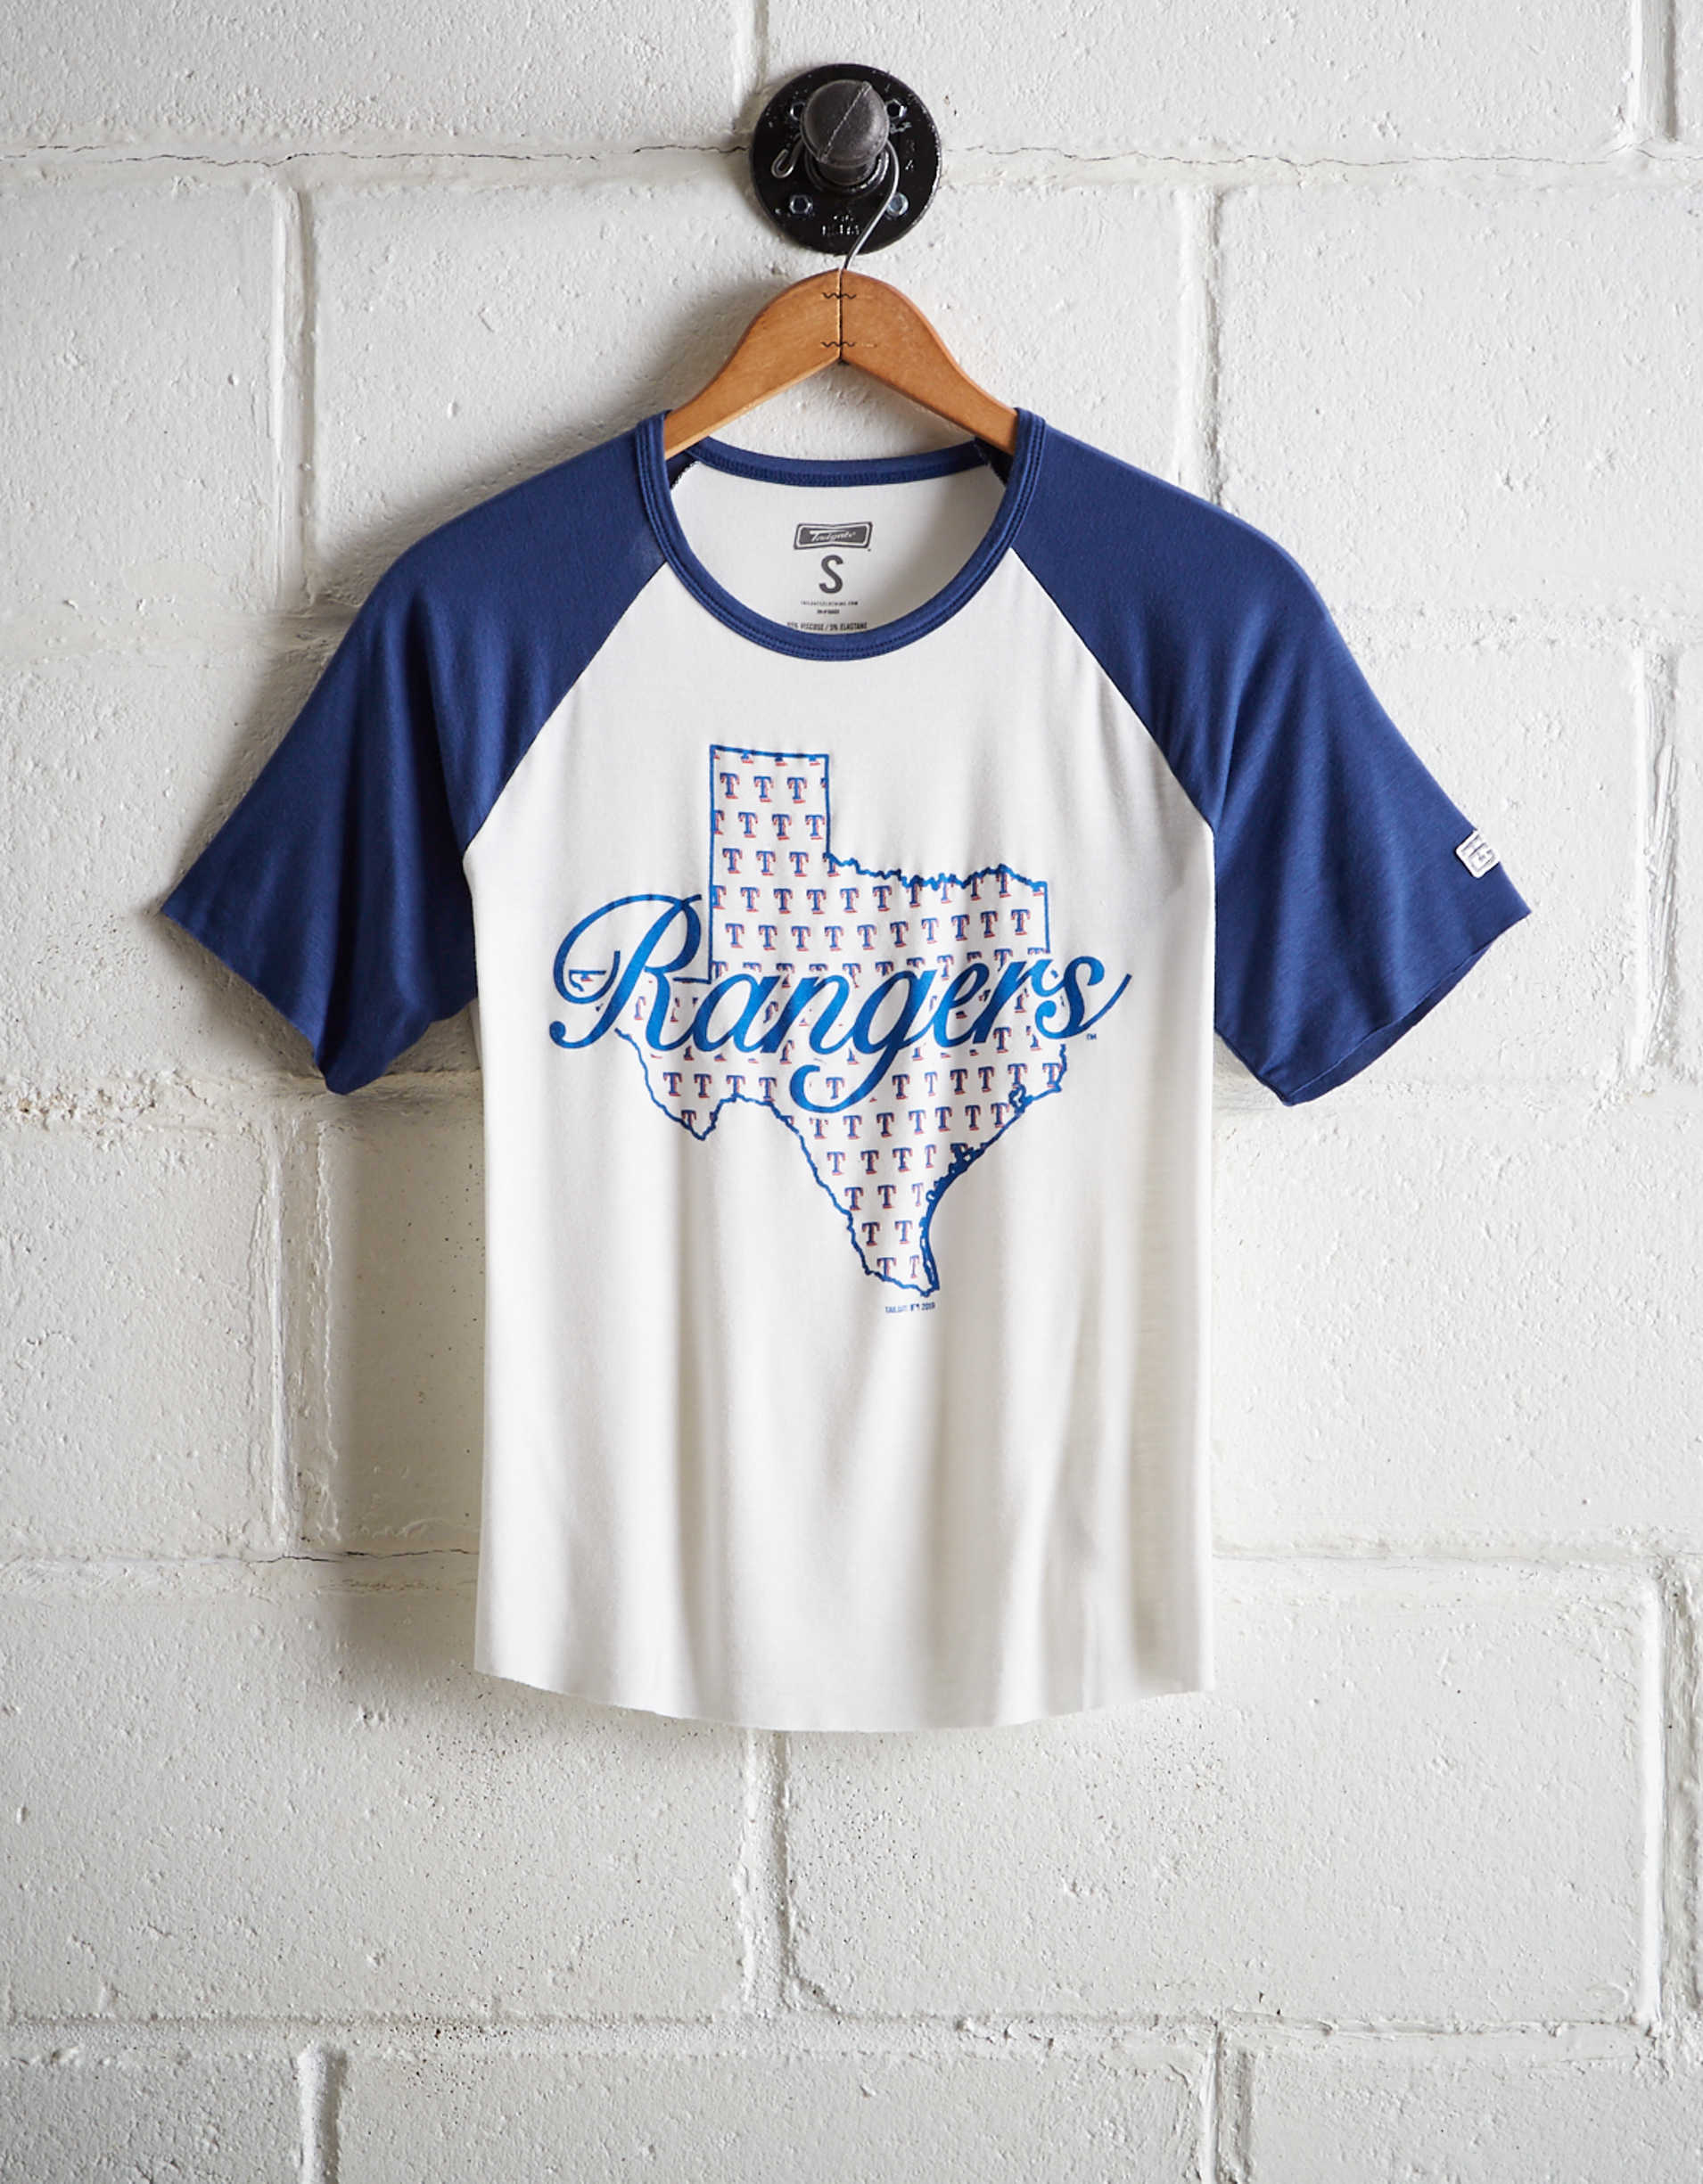 Tailgate Women's Texas Rangers Cut-Off Baseball Tee